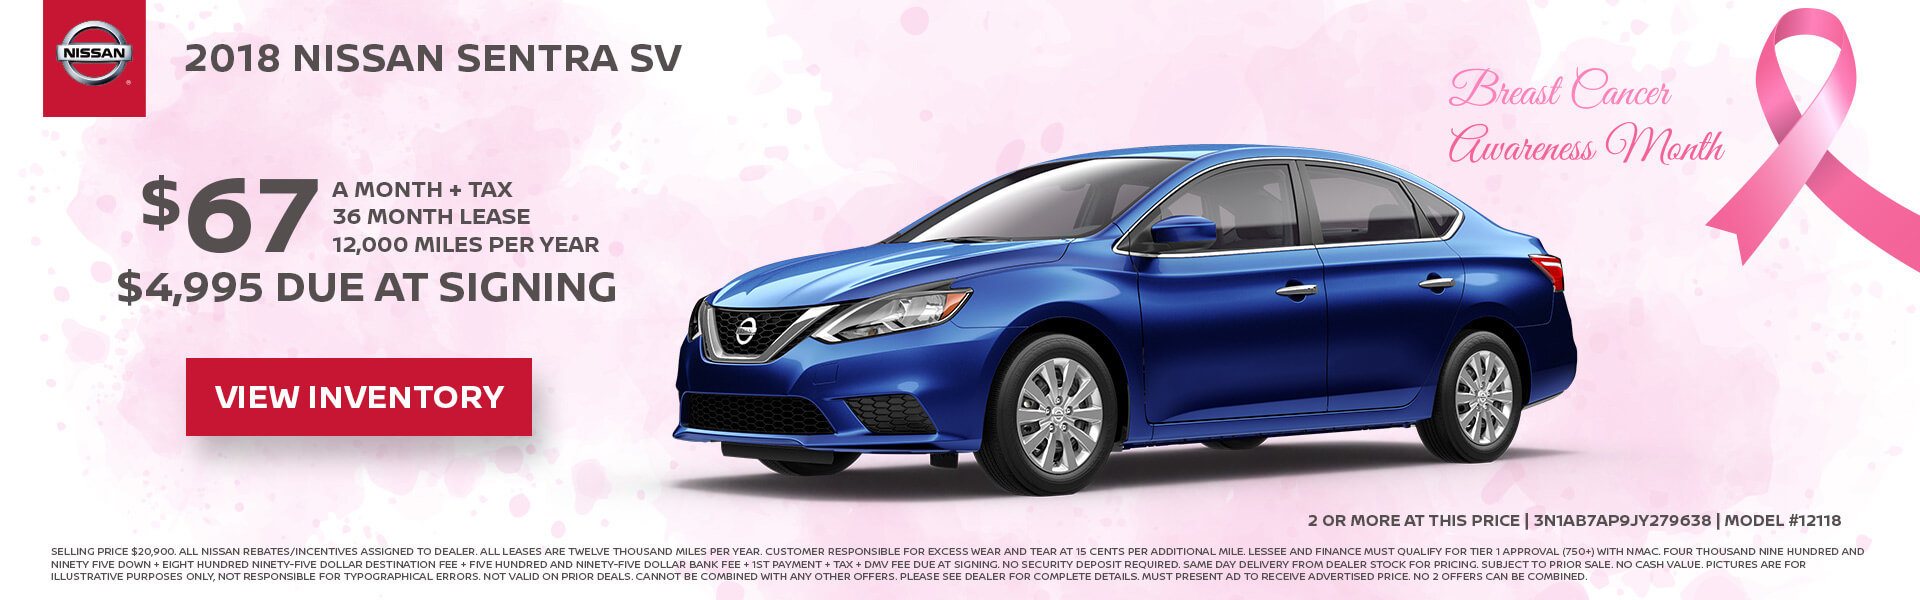 Nissan Sentra $67 Lease